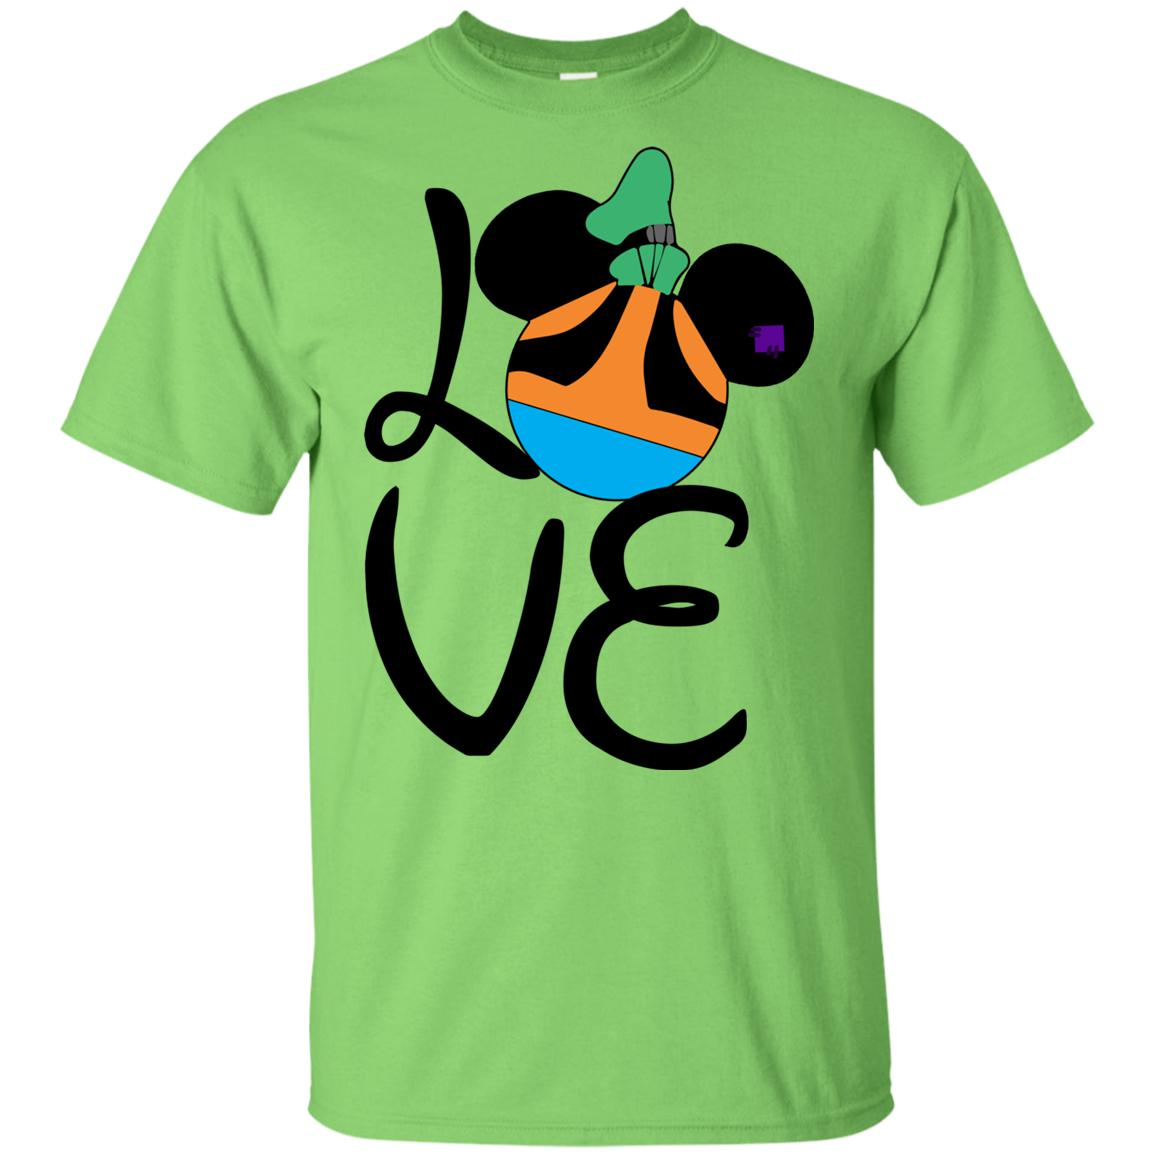 Love Goofy Youth Ultra Cotton T-Shirt